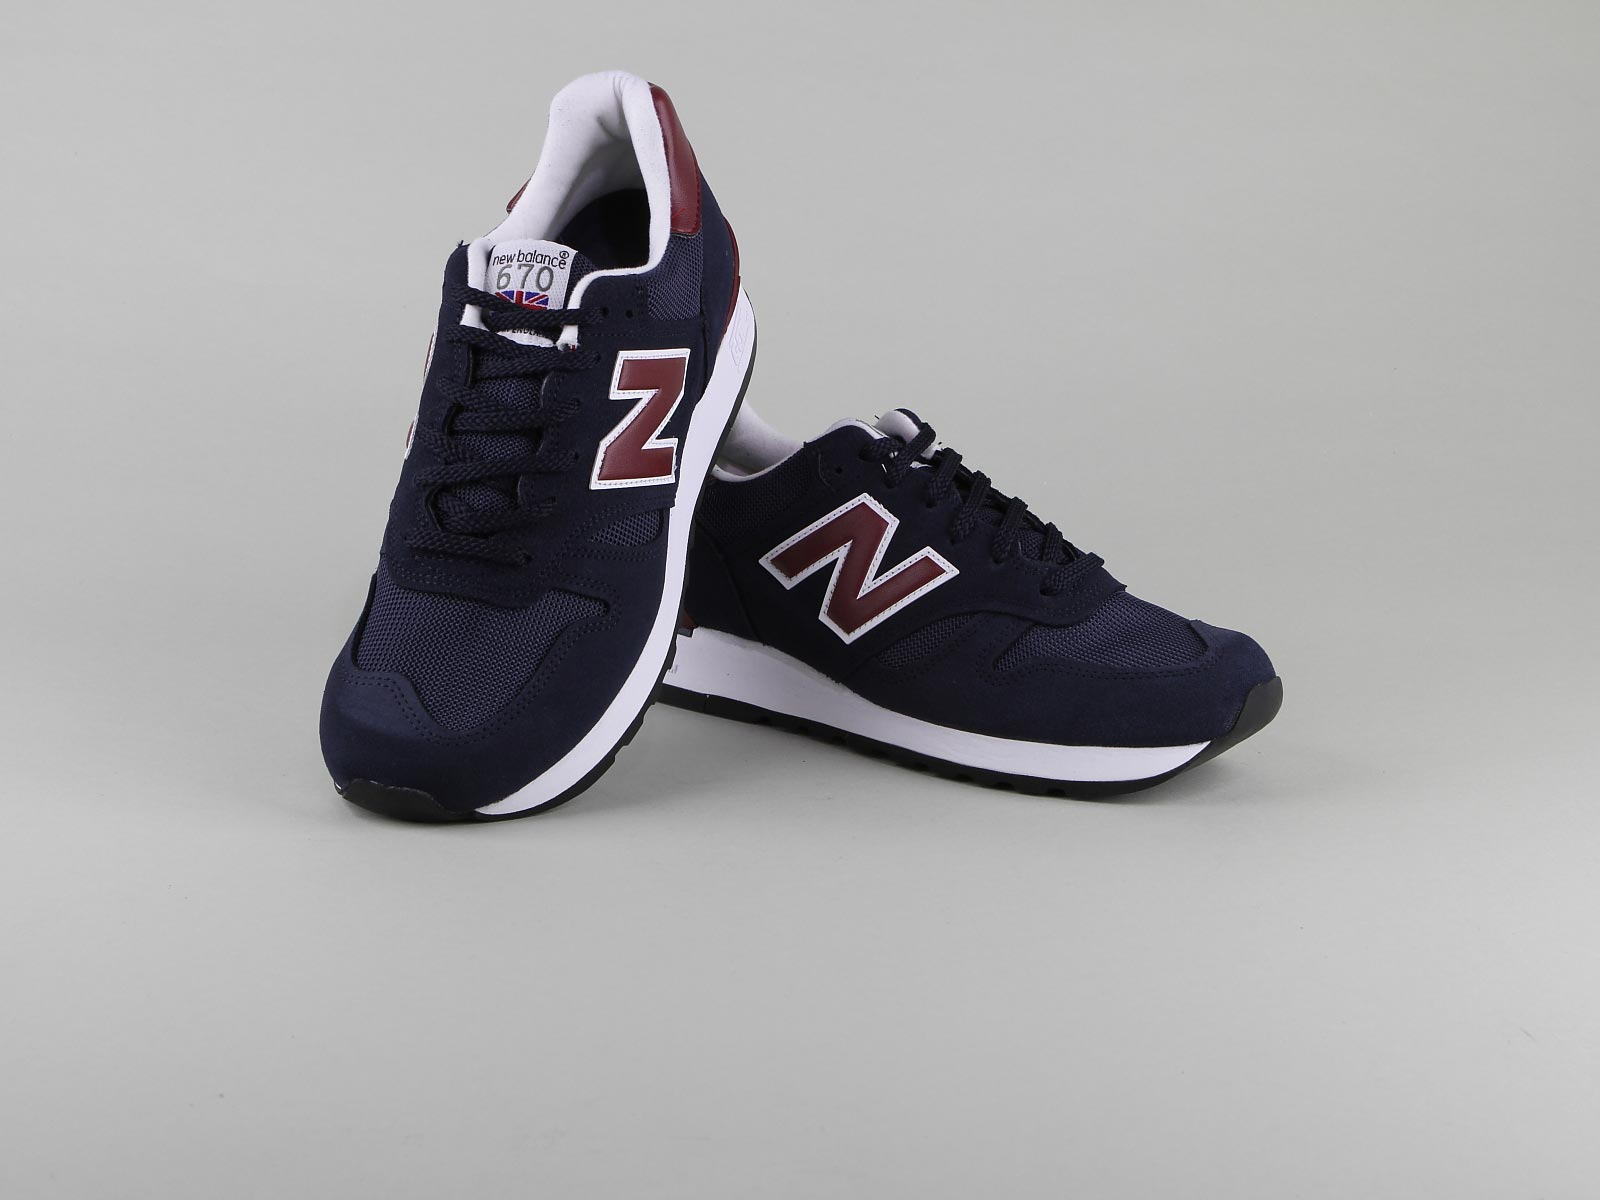 code promo e81ff ce39c Chaussure Vans|New Balance